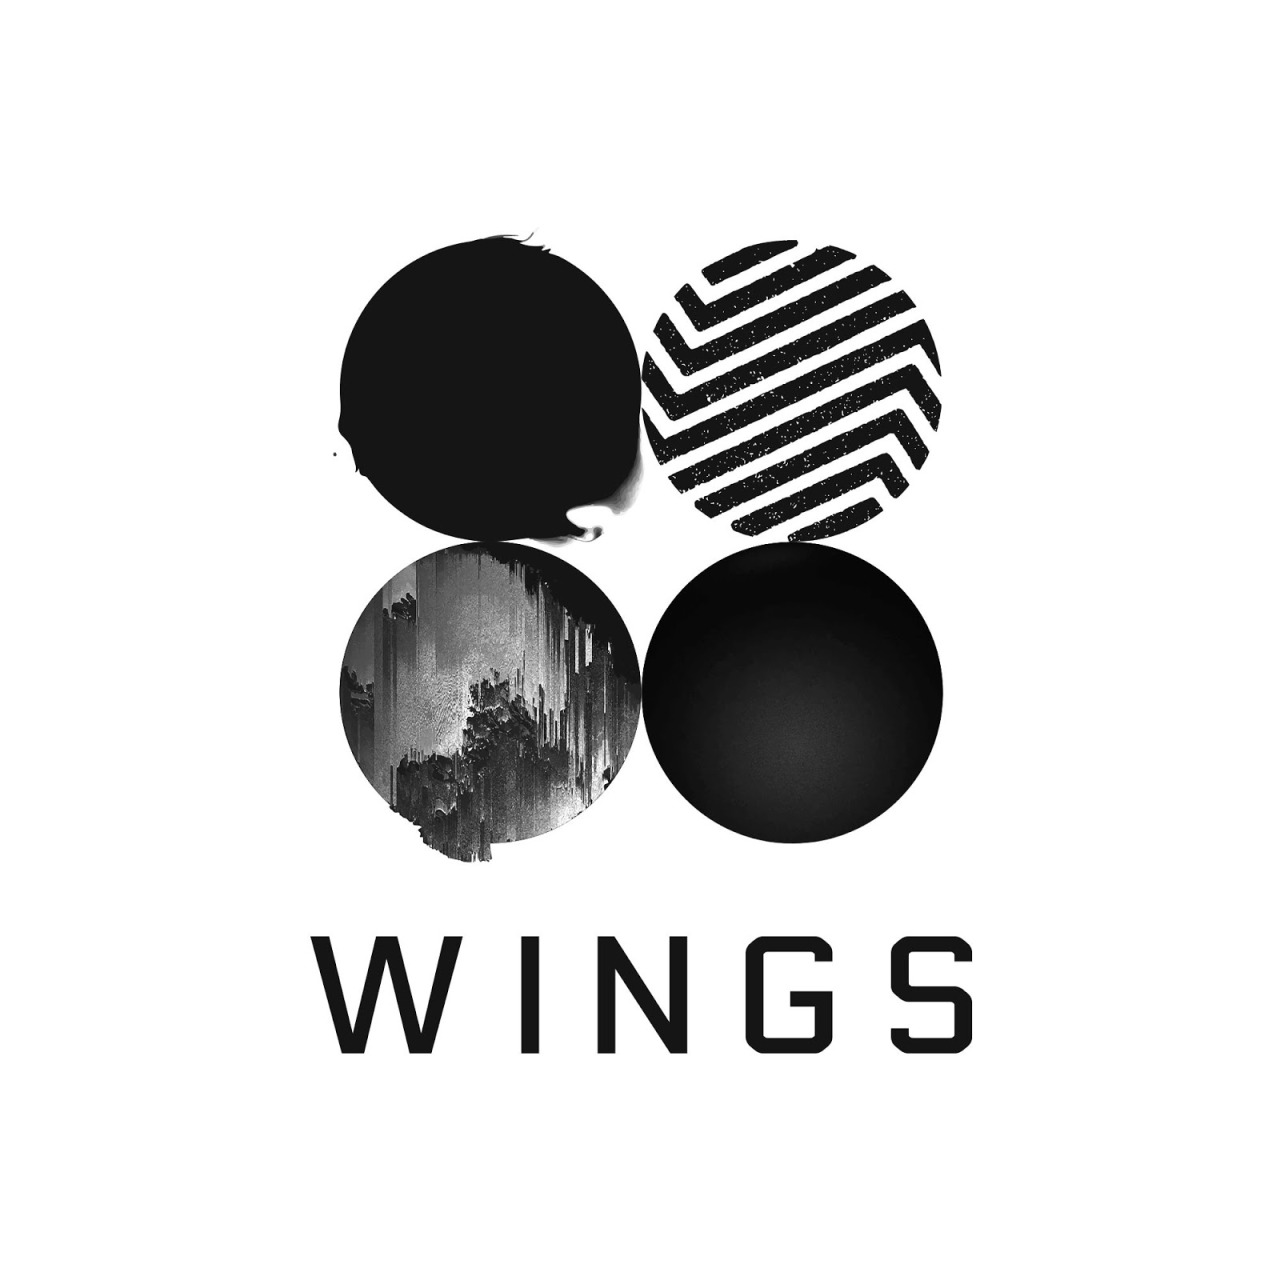 Wings - 1. Intro: Boy Meets Evil2. 피 땀 눈물 (Blood, Sweat & Tears)3. Begin by Jungkook4. Lie by Jimin5. Stigma by V6. First Love by Suga7. Reflection by Rap Monster8. MAMA by J-Hope9. Awake by Jin10. Lost11. BTS Cypher Pt. 412. Am I Wrong13. 21세기 소녀 (21st Century Girls)14. 둘! 셋! (그래도 좋은 날이 더 많기를)(Two! Three! (Hoping For More Good Days))15. Interlude: Wings